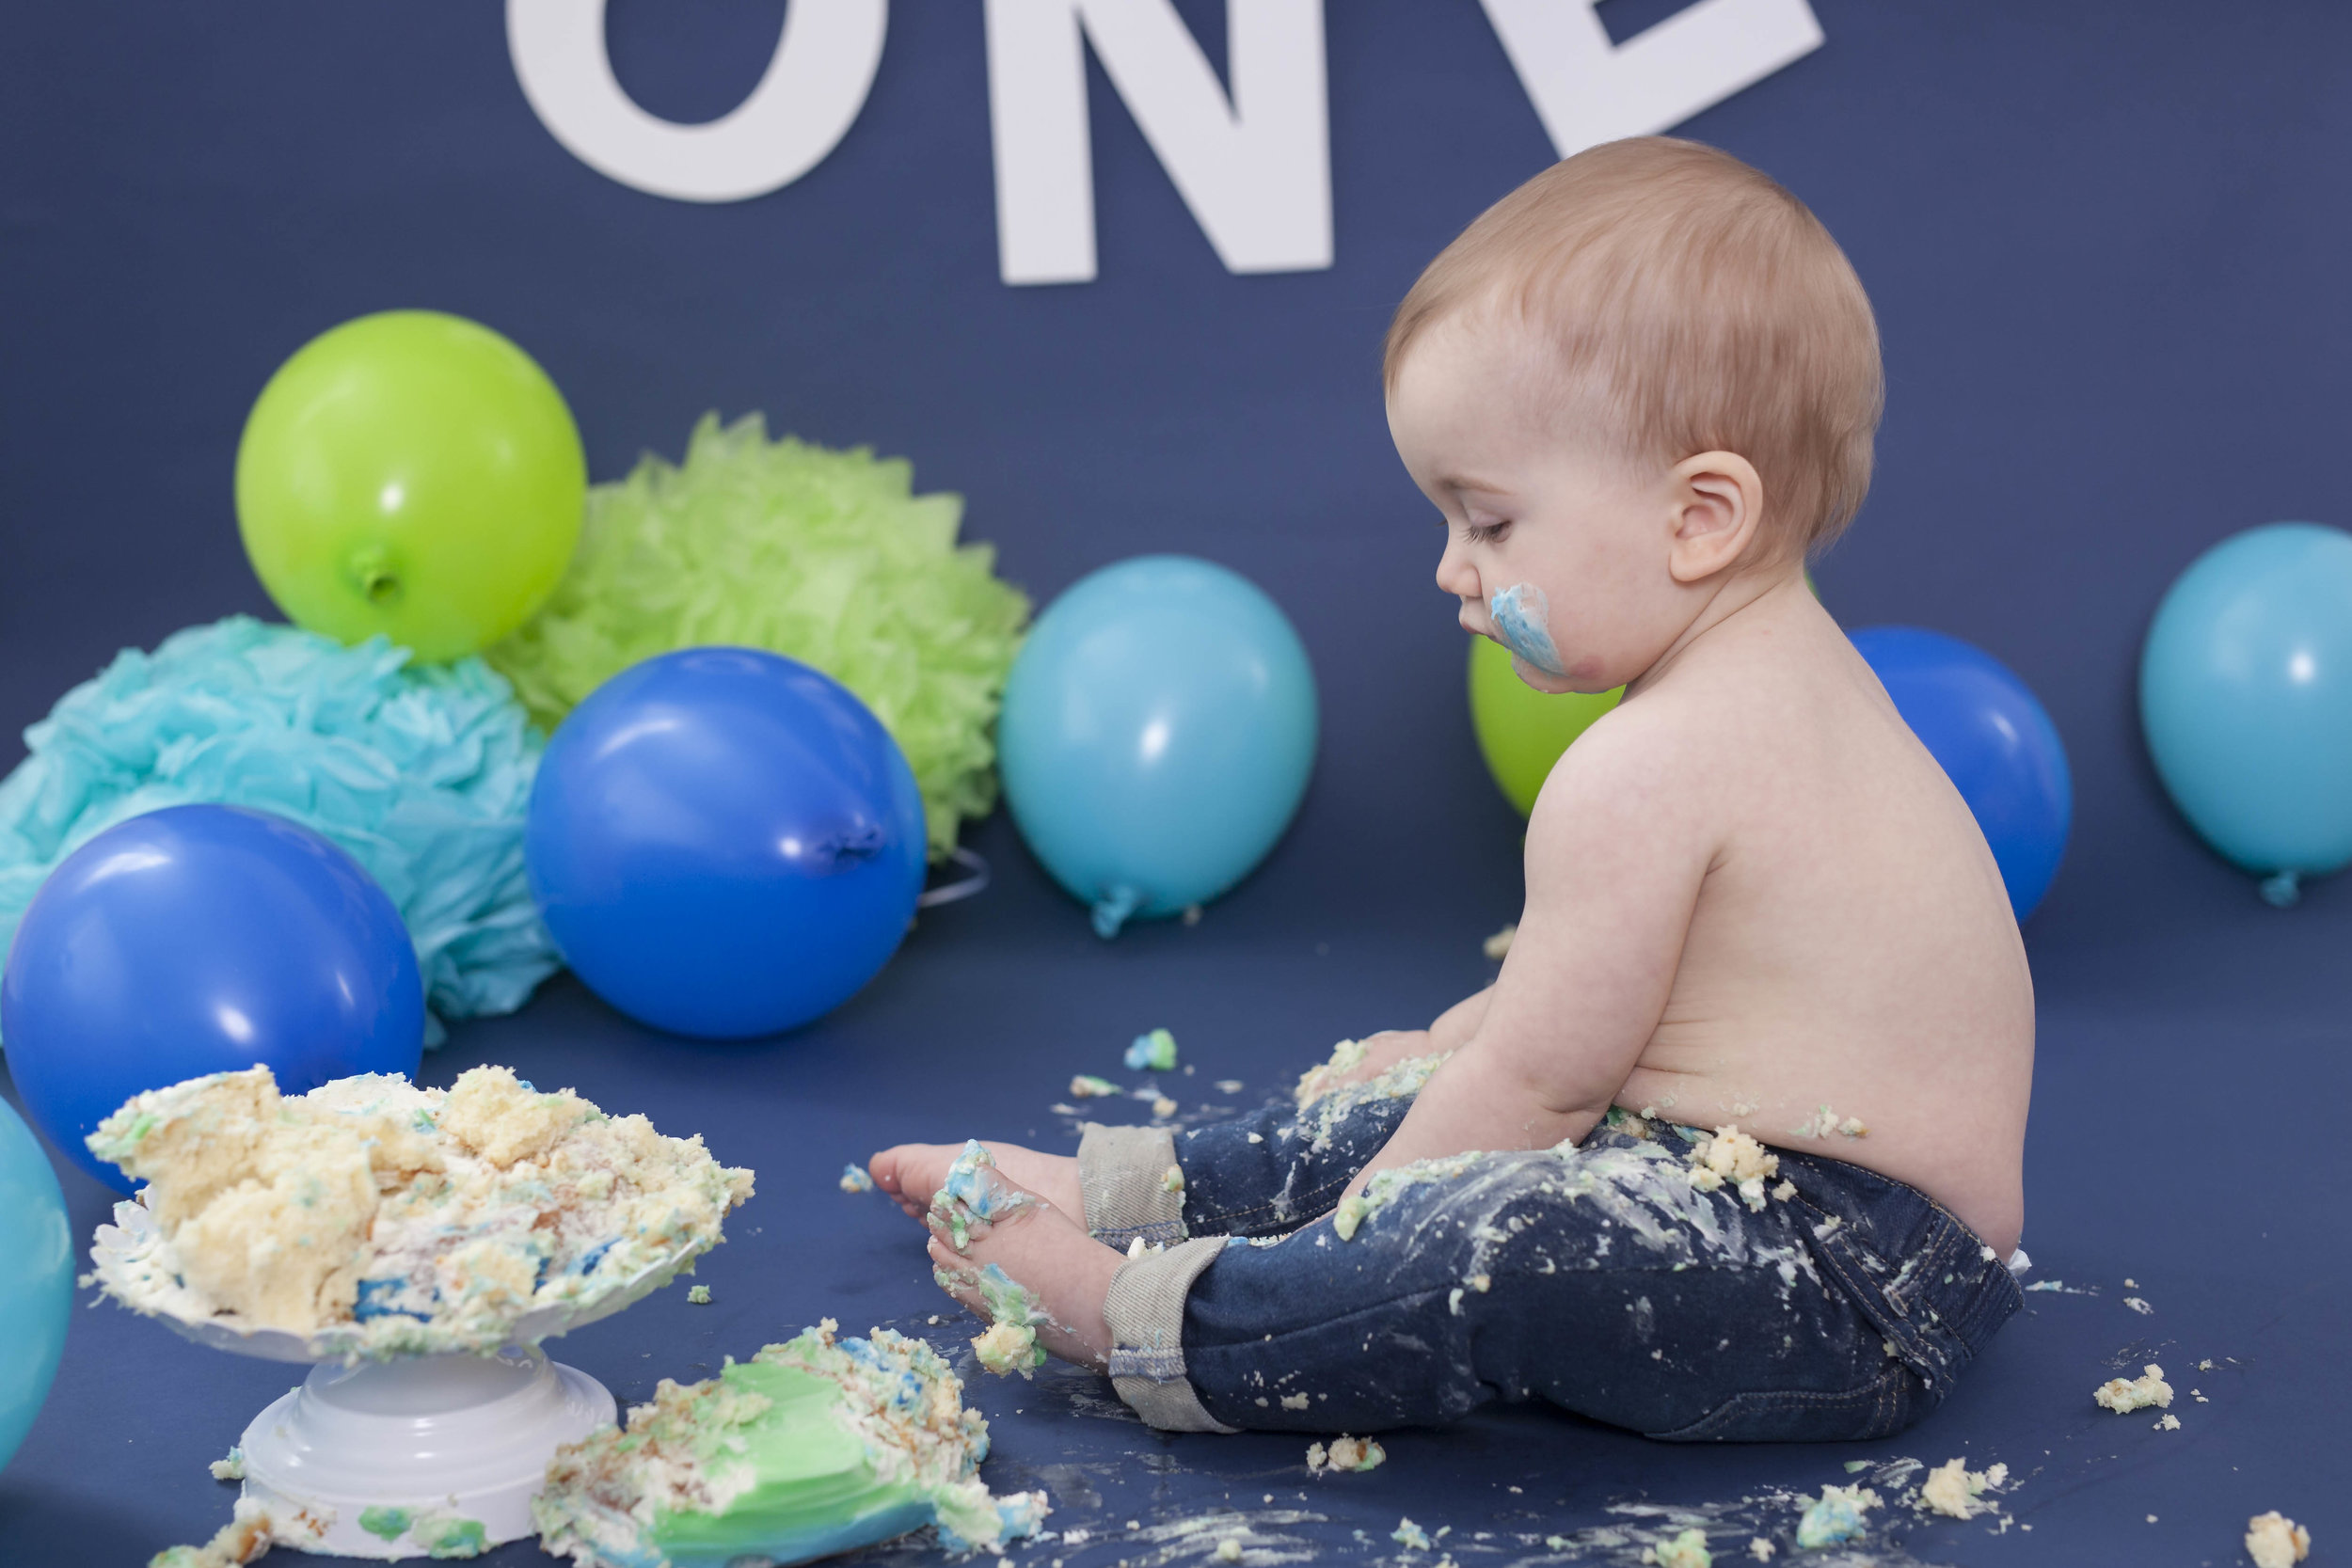 Northampton_PA_Cake_Smash_Photographer